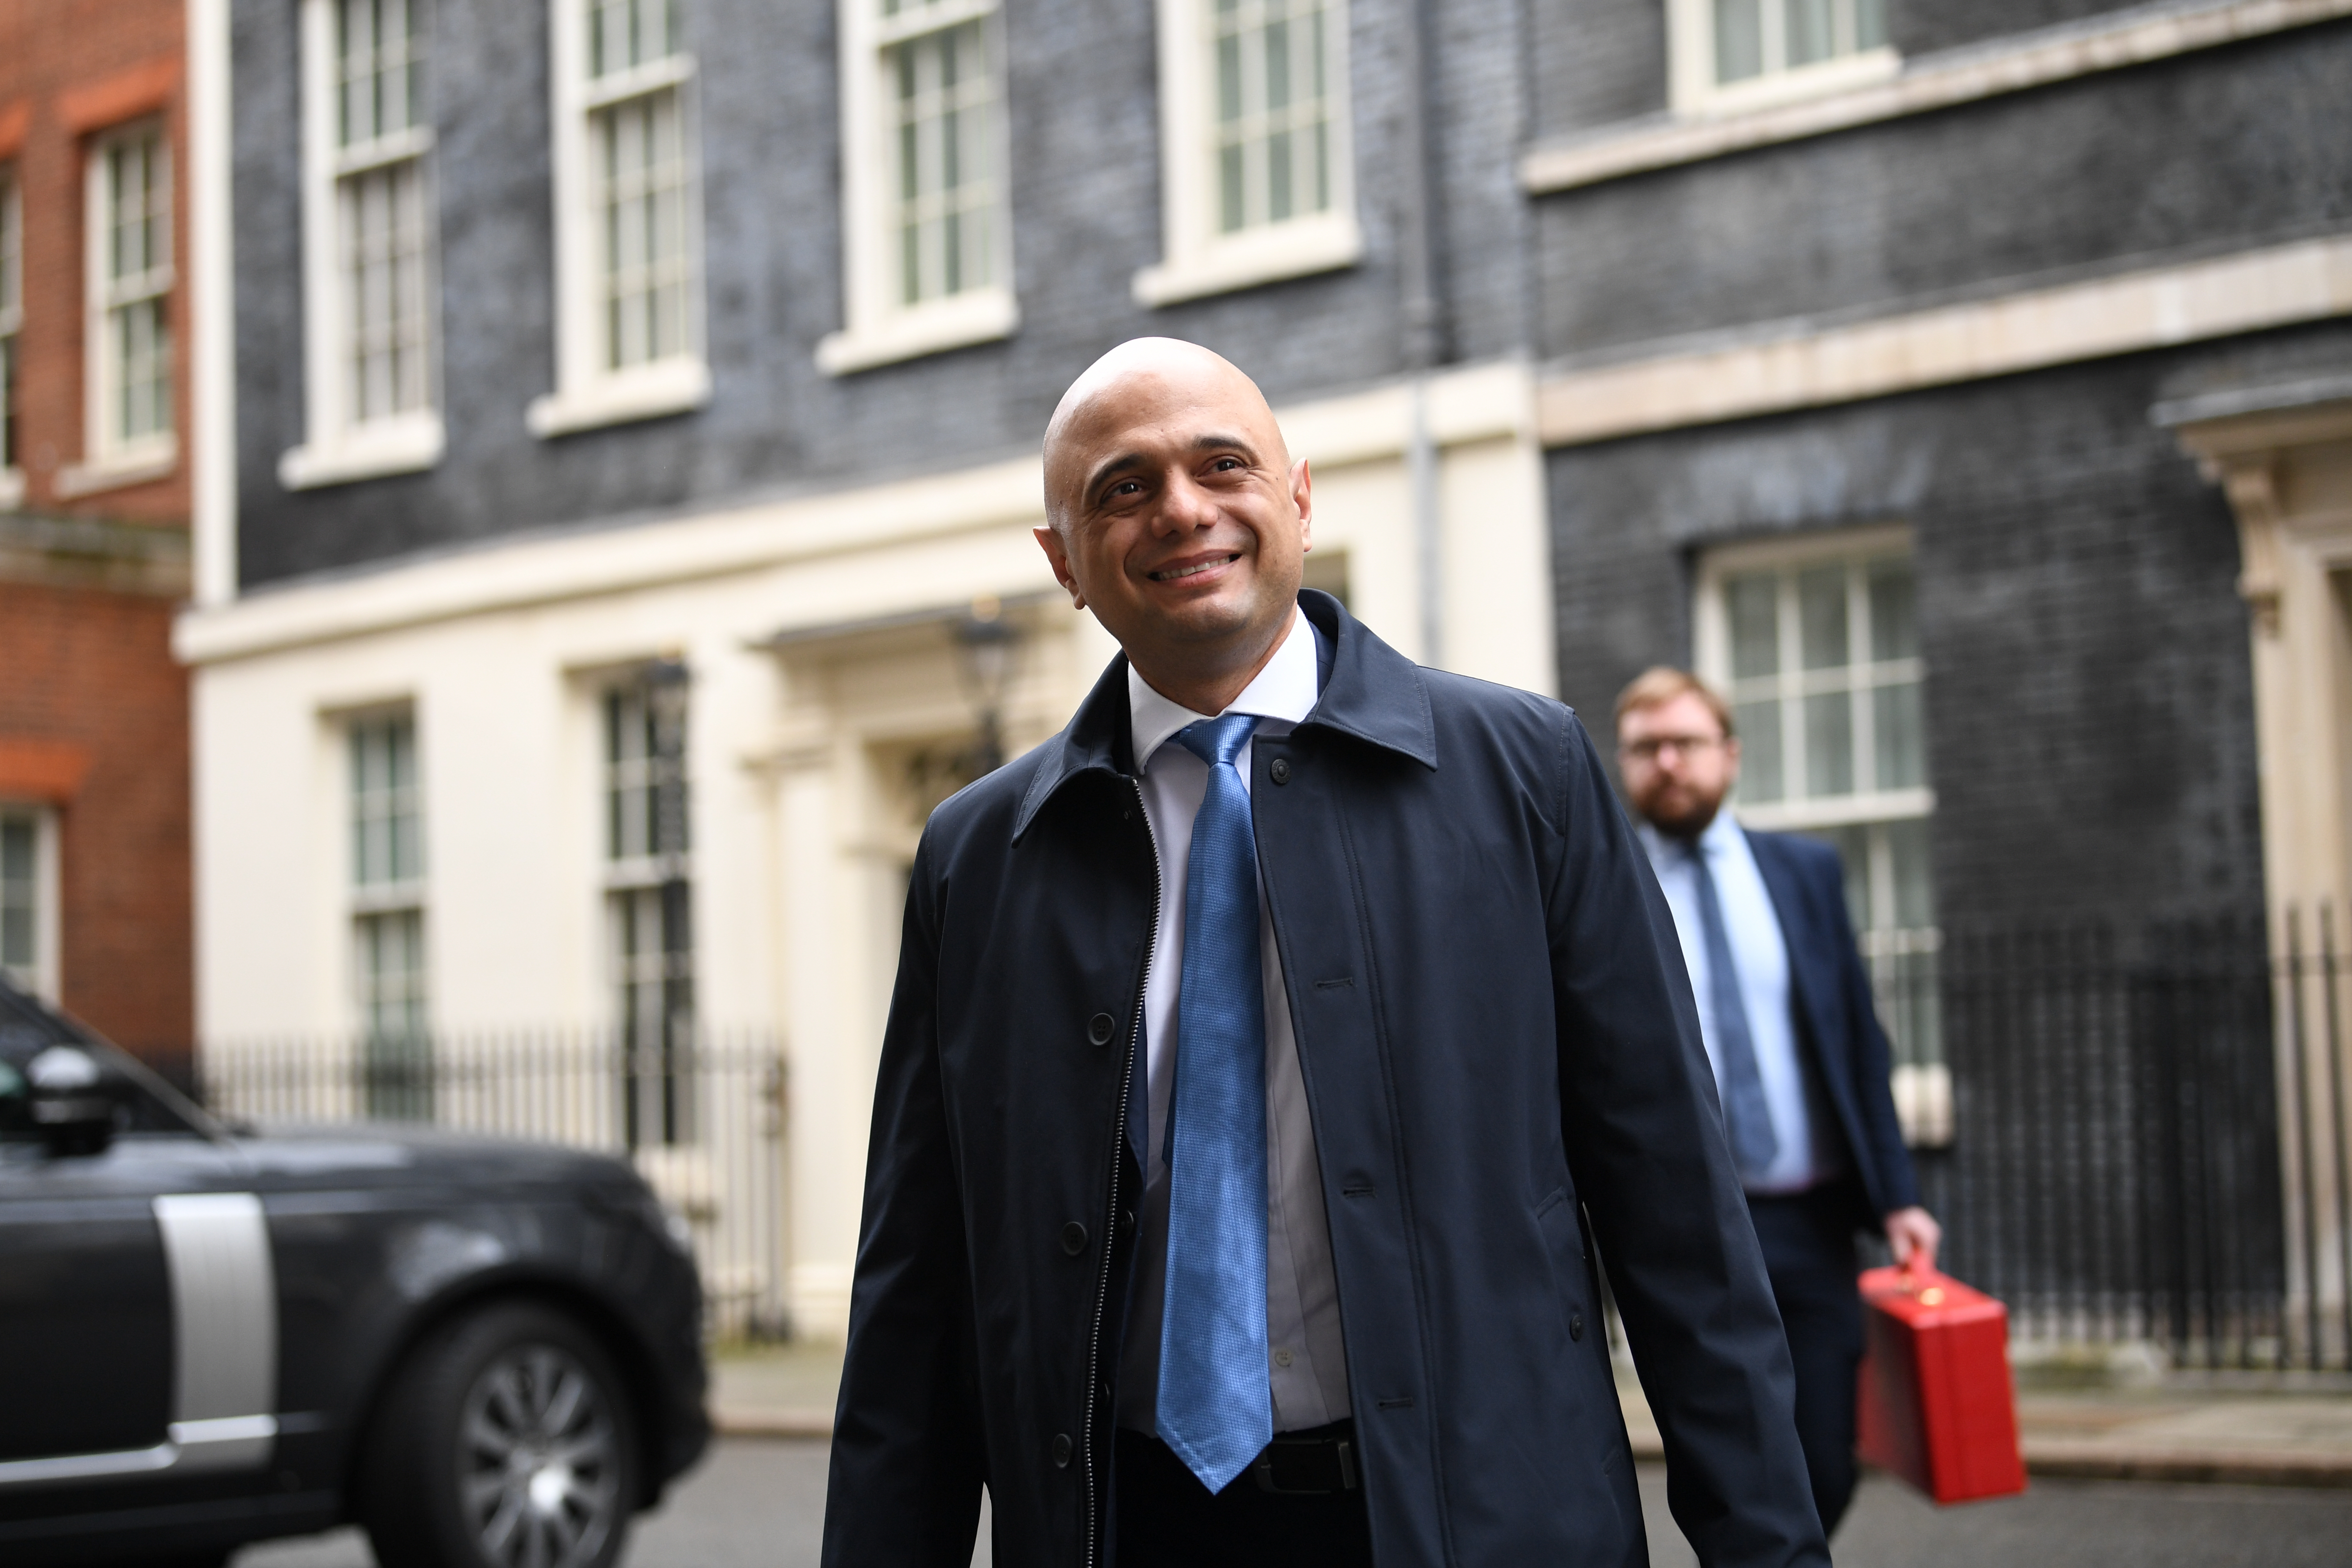 Chancellor of the Exchequer Sajid Javid leaves Downing Street, London, after the first Cabinet meeting of the year.